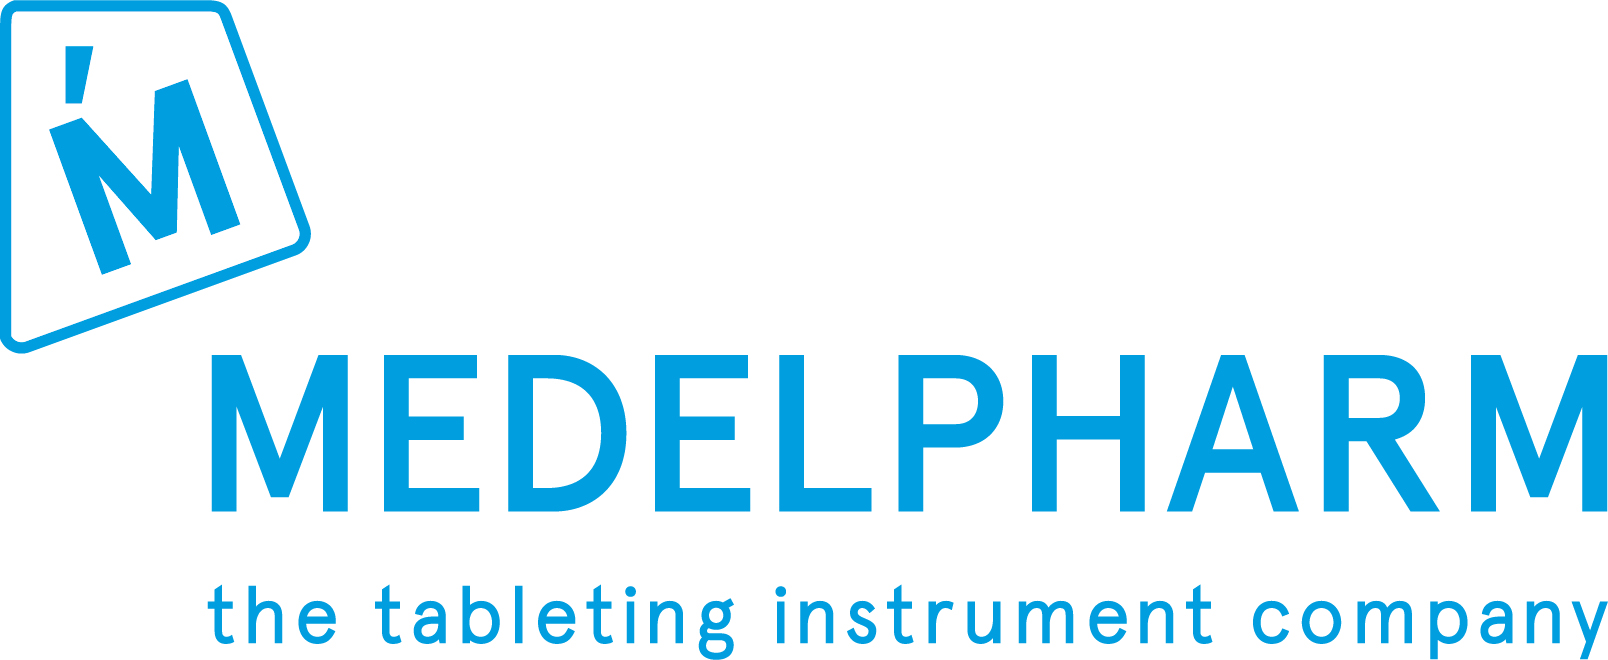 Medelpharm shares advanced tableting insights at SE Asian events